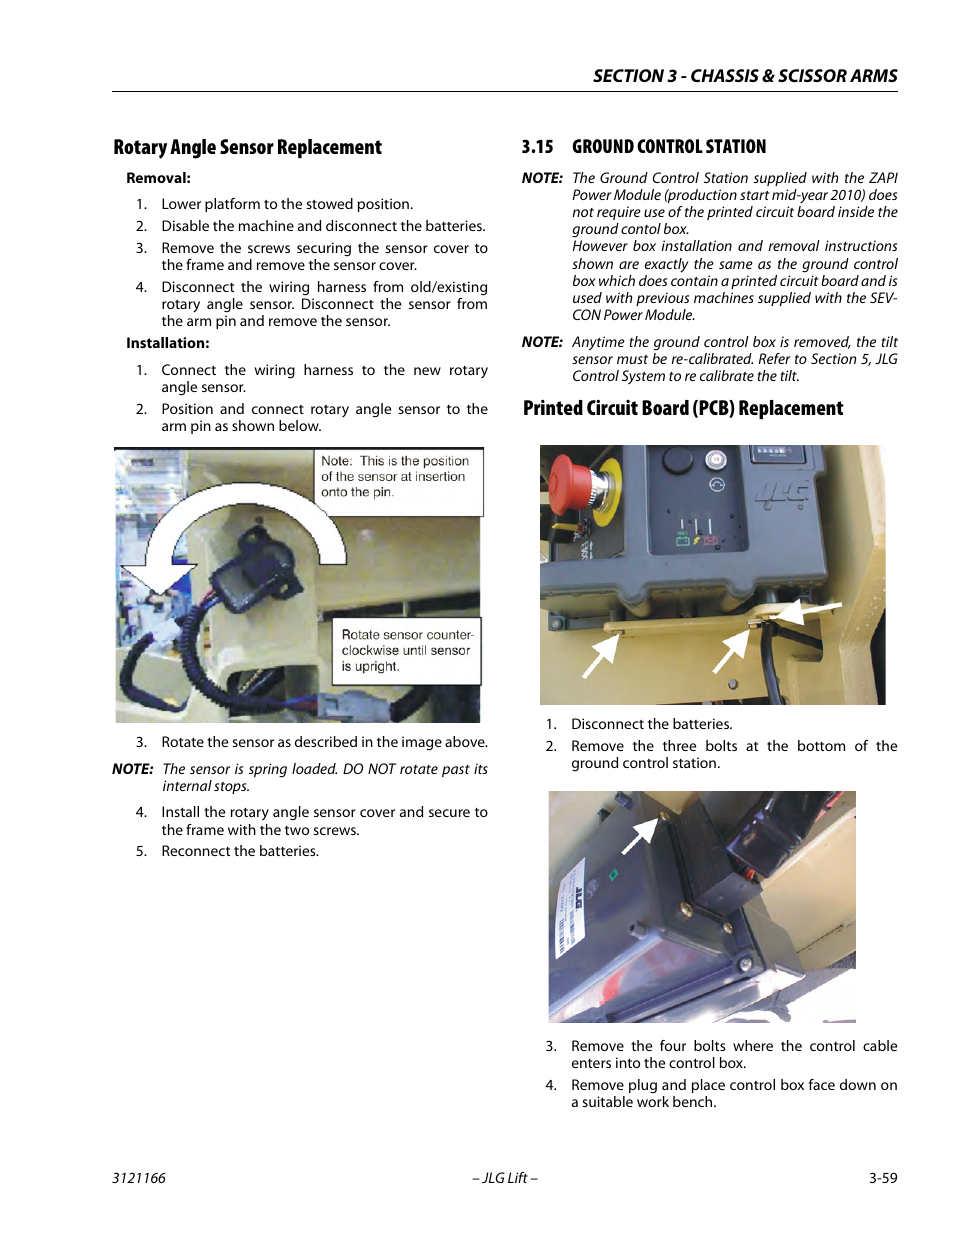 jlg 3246es service manual page95 rotary angle sensor replacement, 15 ground control station jlg wiring harness at gsmportal.co